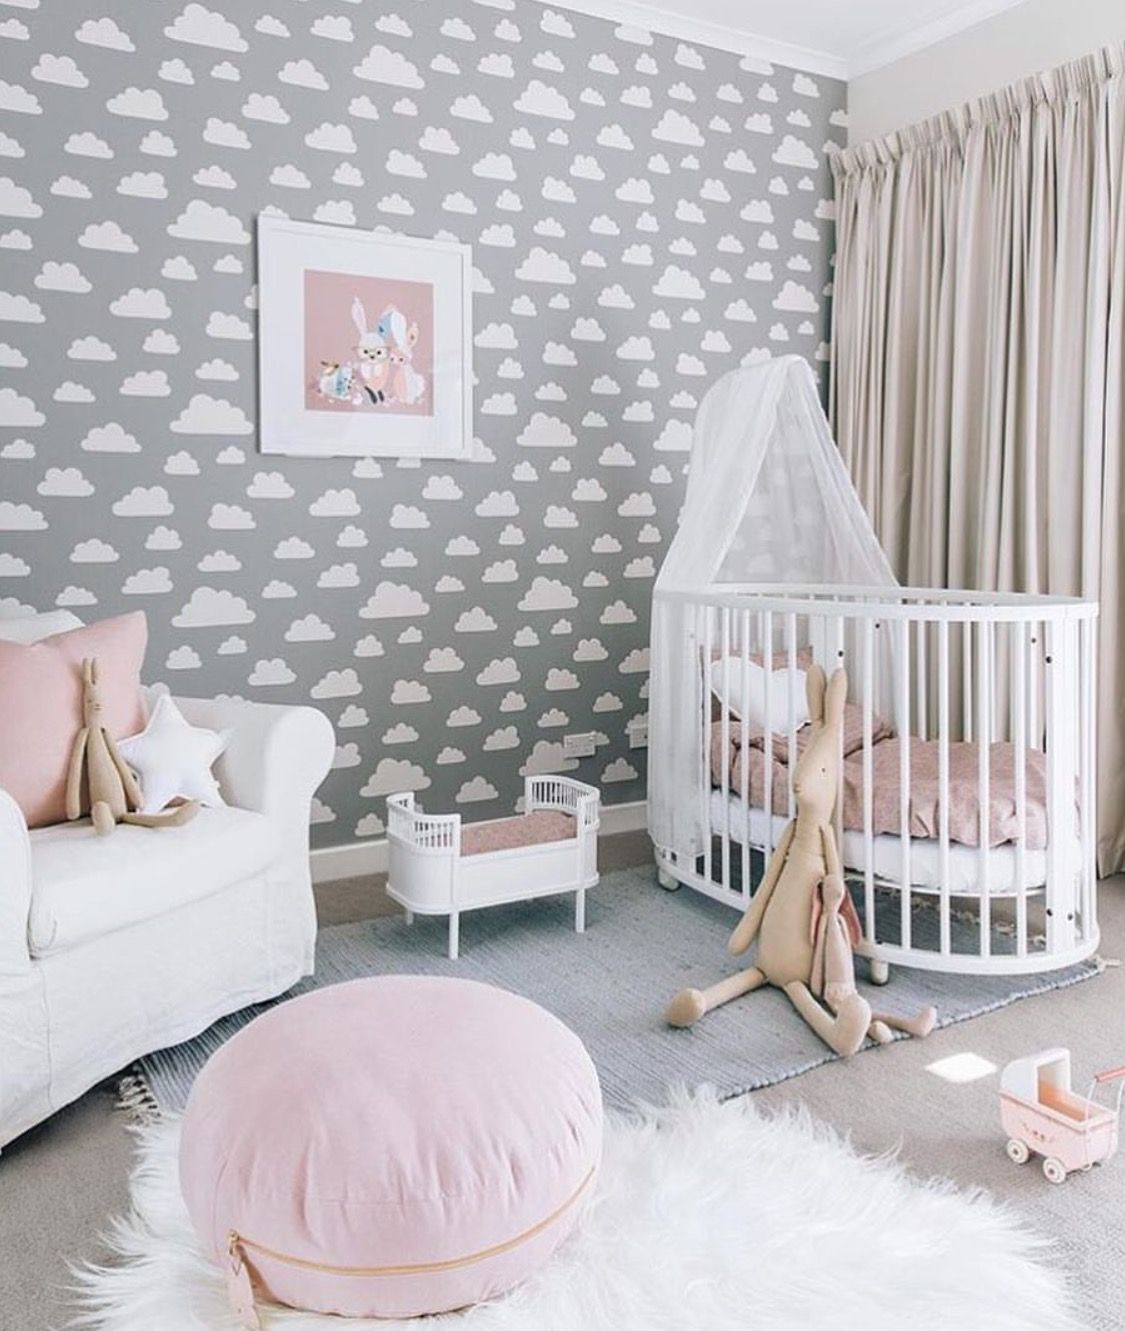 Pin di Debbie Rice su Baby things | Pinterest | Architettura